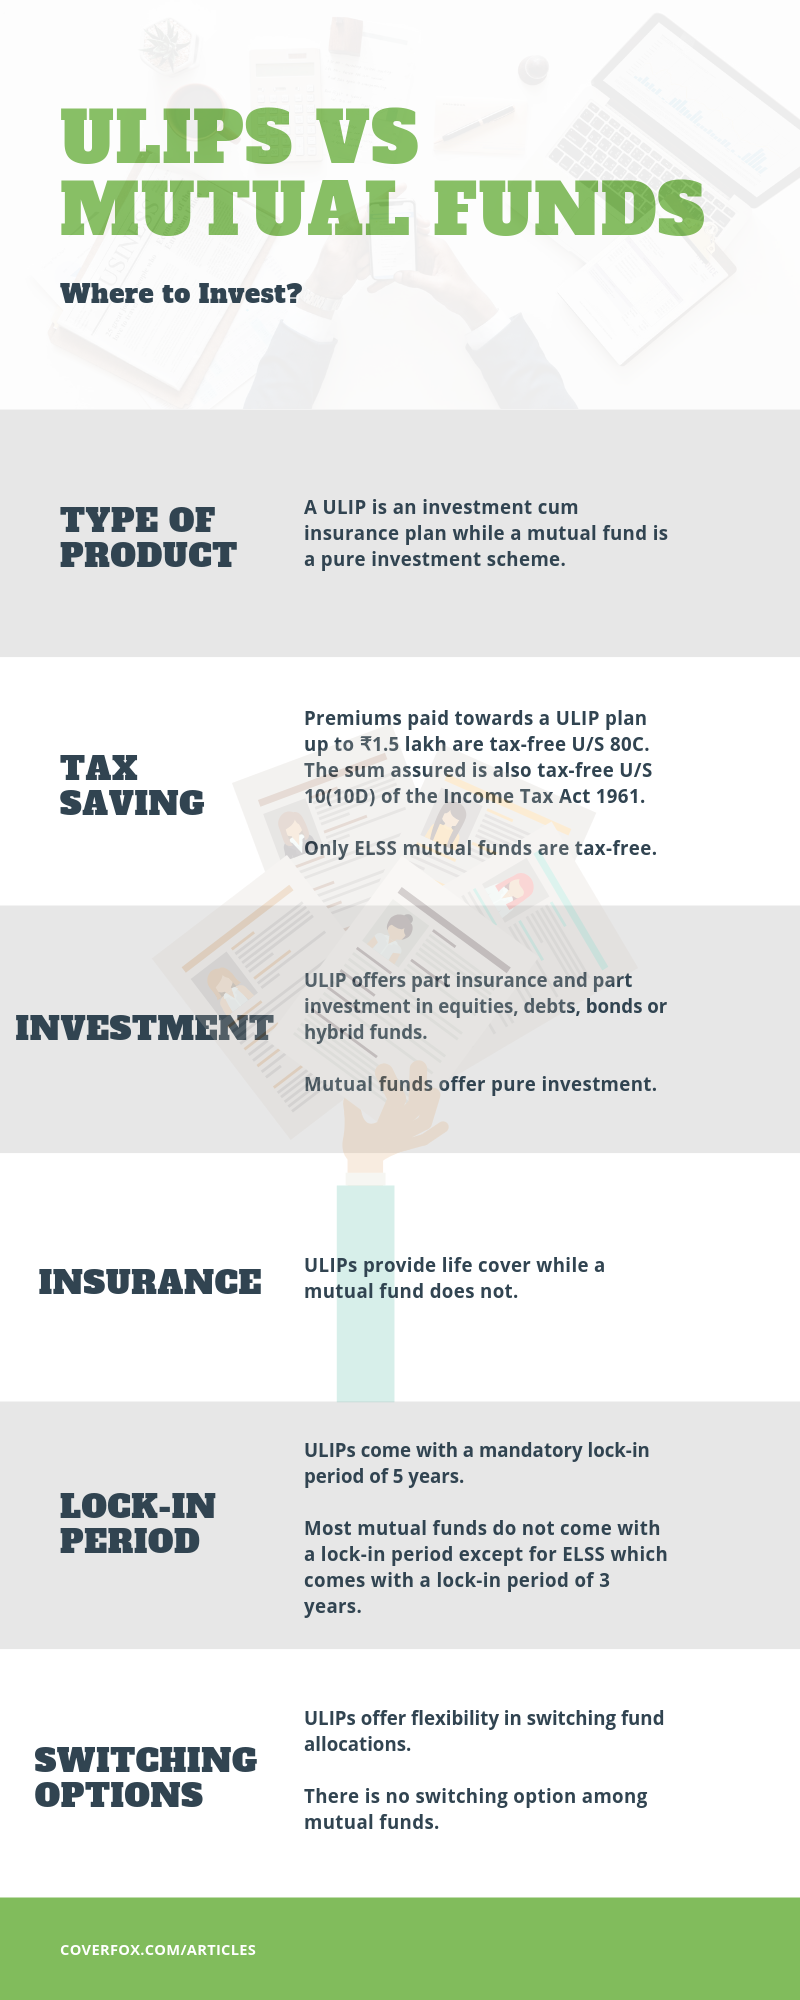 Read To Get A Quick Comparison Between Ulip And Mutual Funds